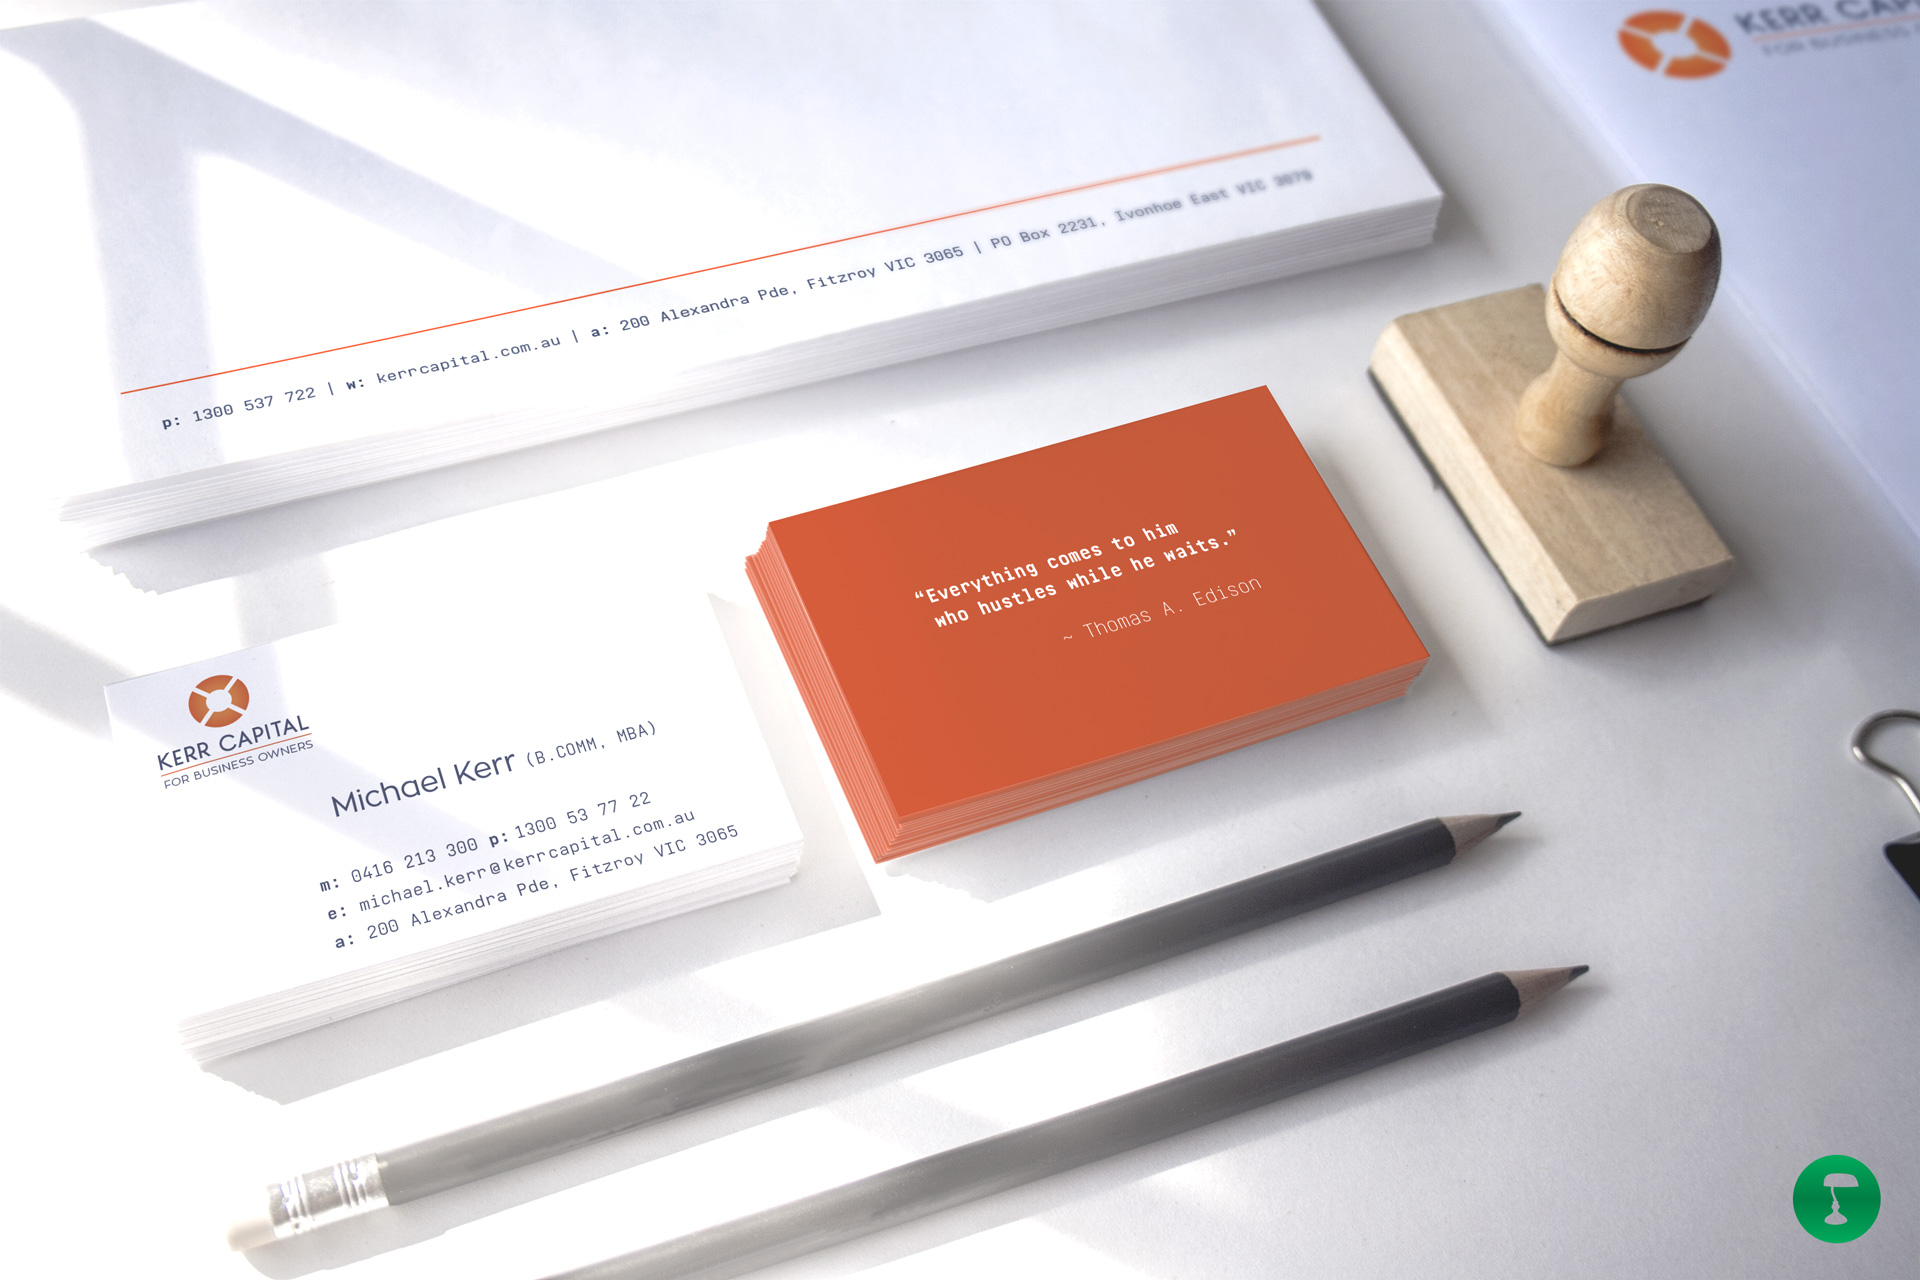 kerr_capital_-_mock-up_-_stationery_-_02.jpg